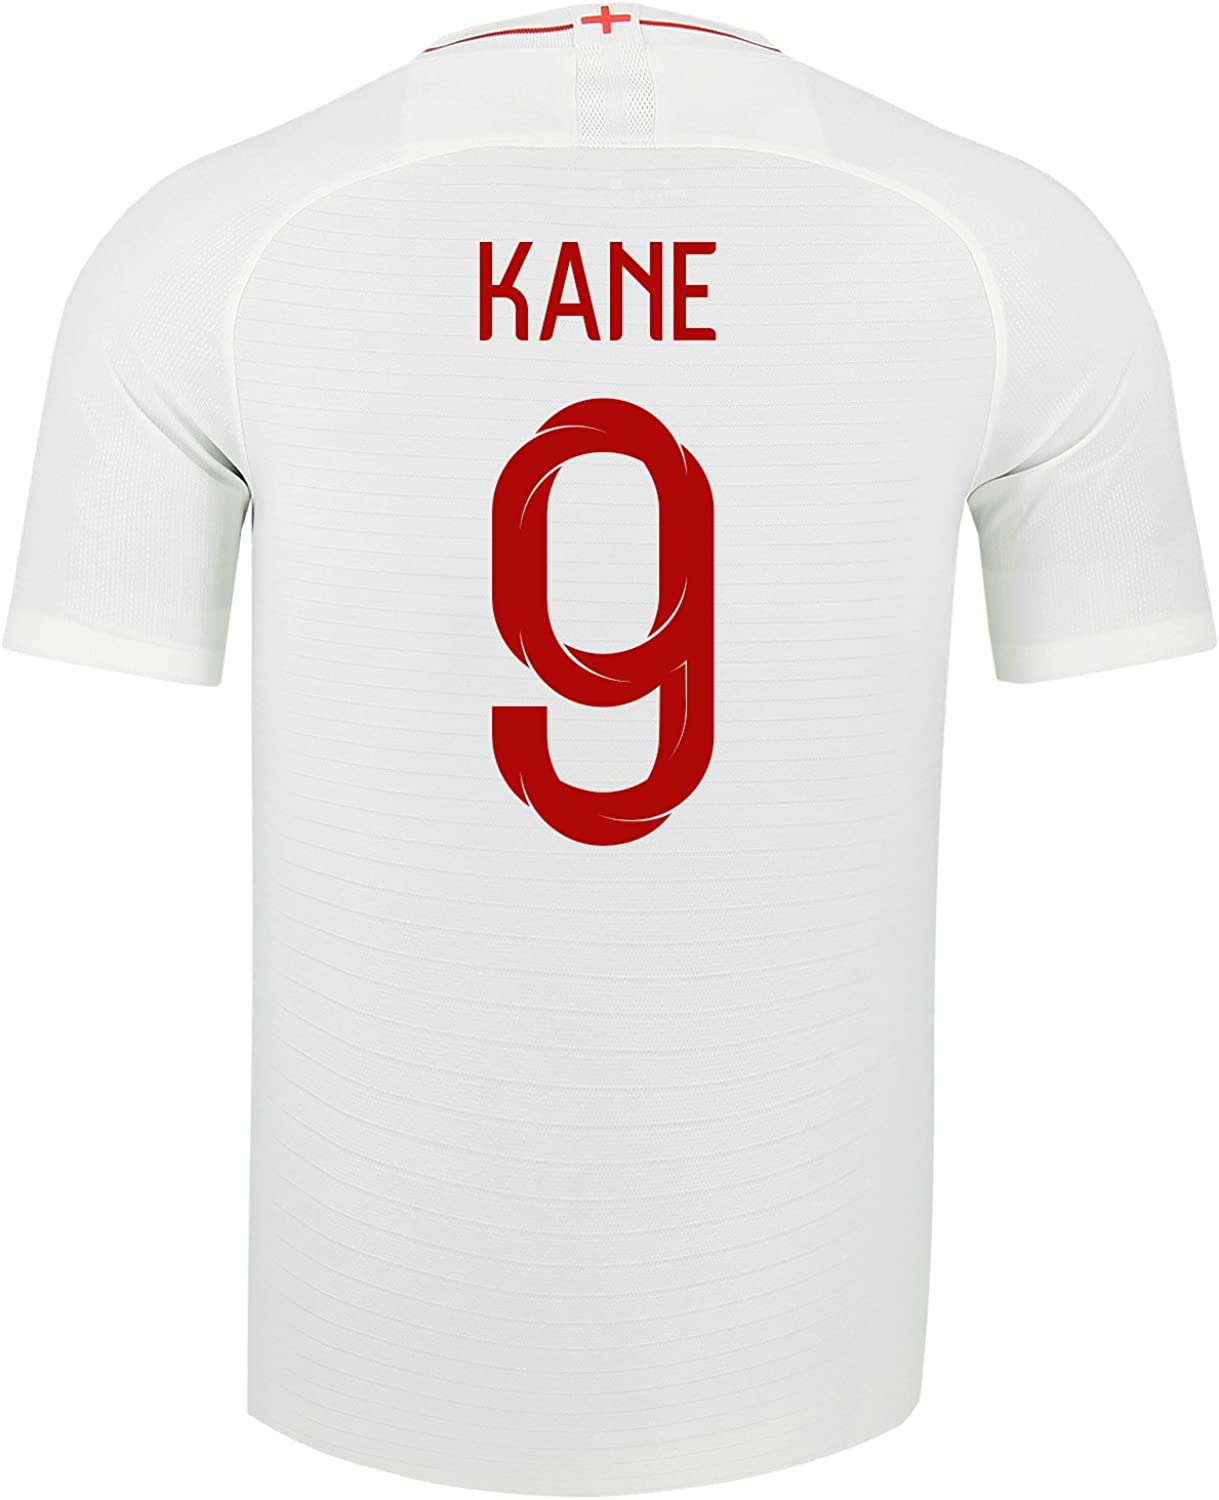 Nike Kane  9 England Home Soccer Stadium Men's Jersey World Cup Russia 2018